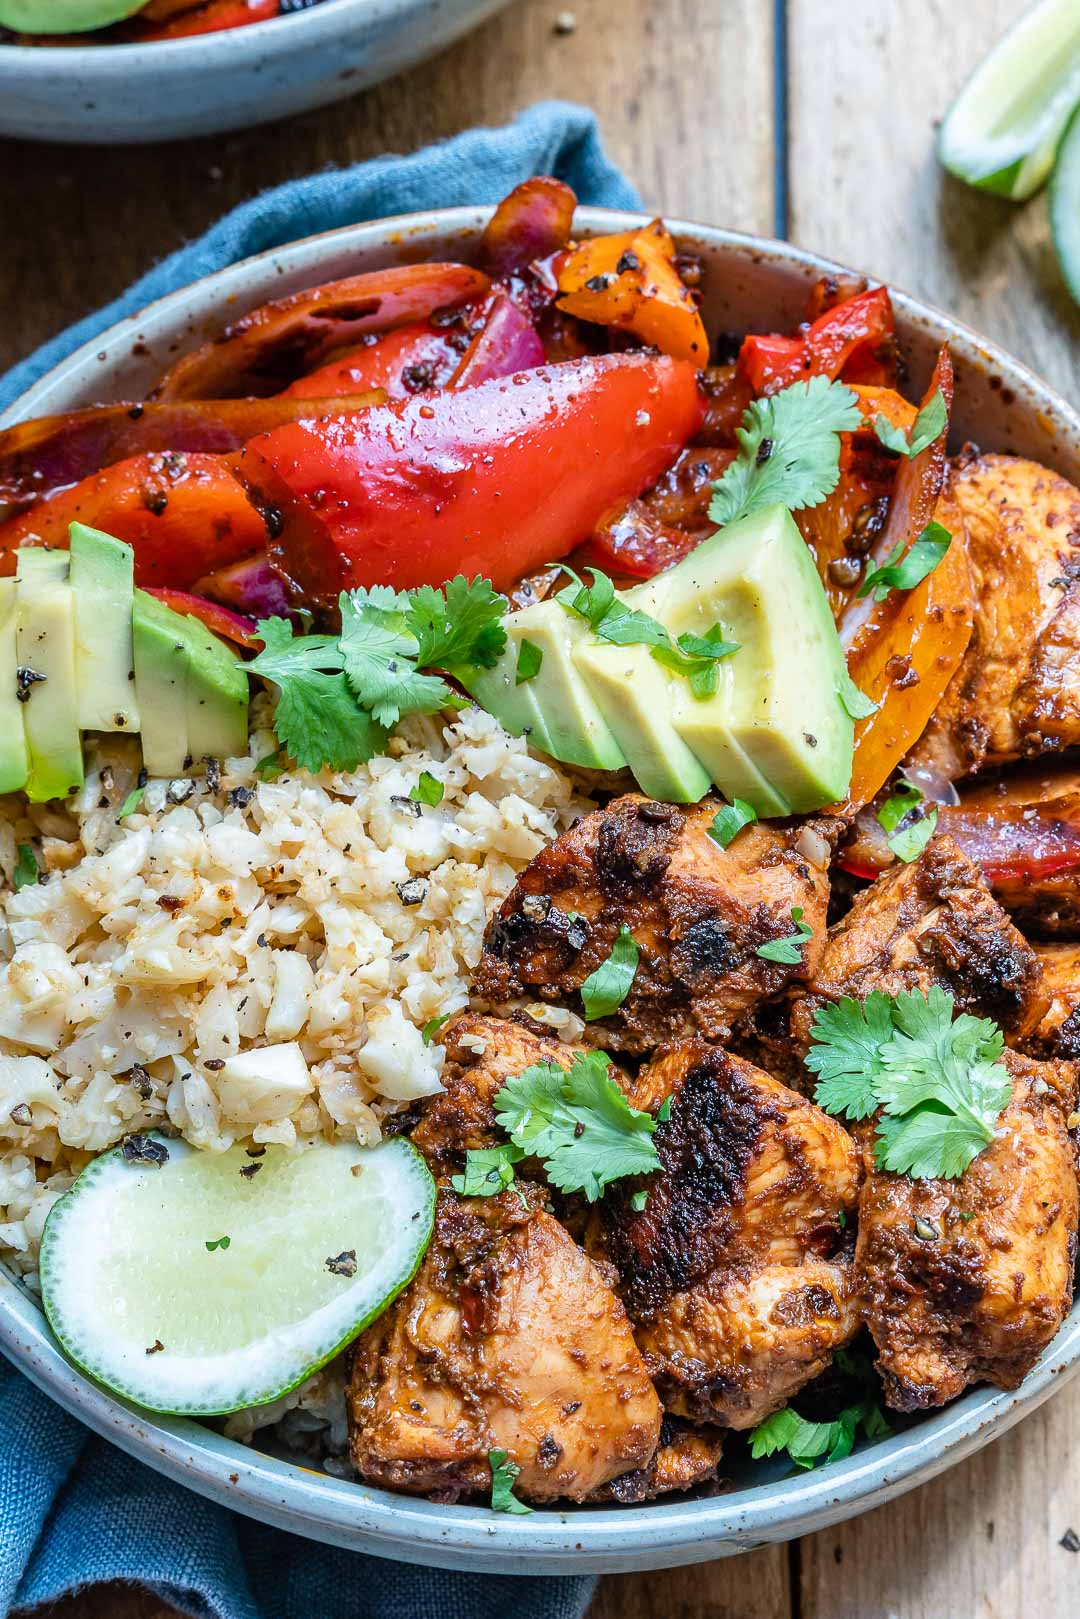 Chipotle Chicken Bowl With Cauliflower Rice (Paleo/Whole30 Recipe)-13